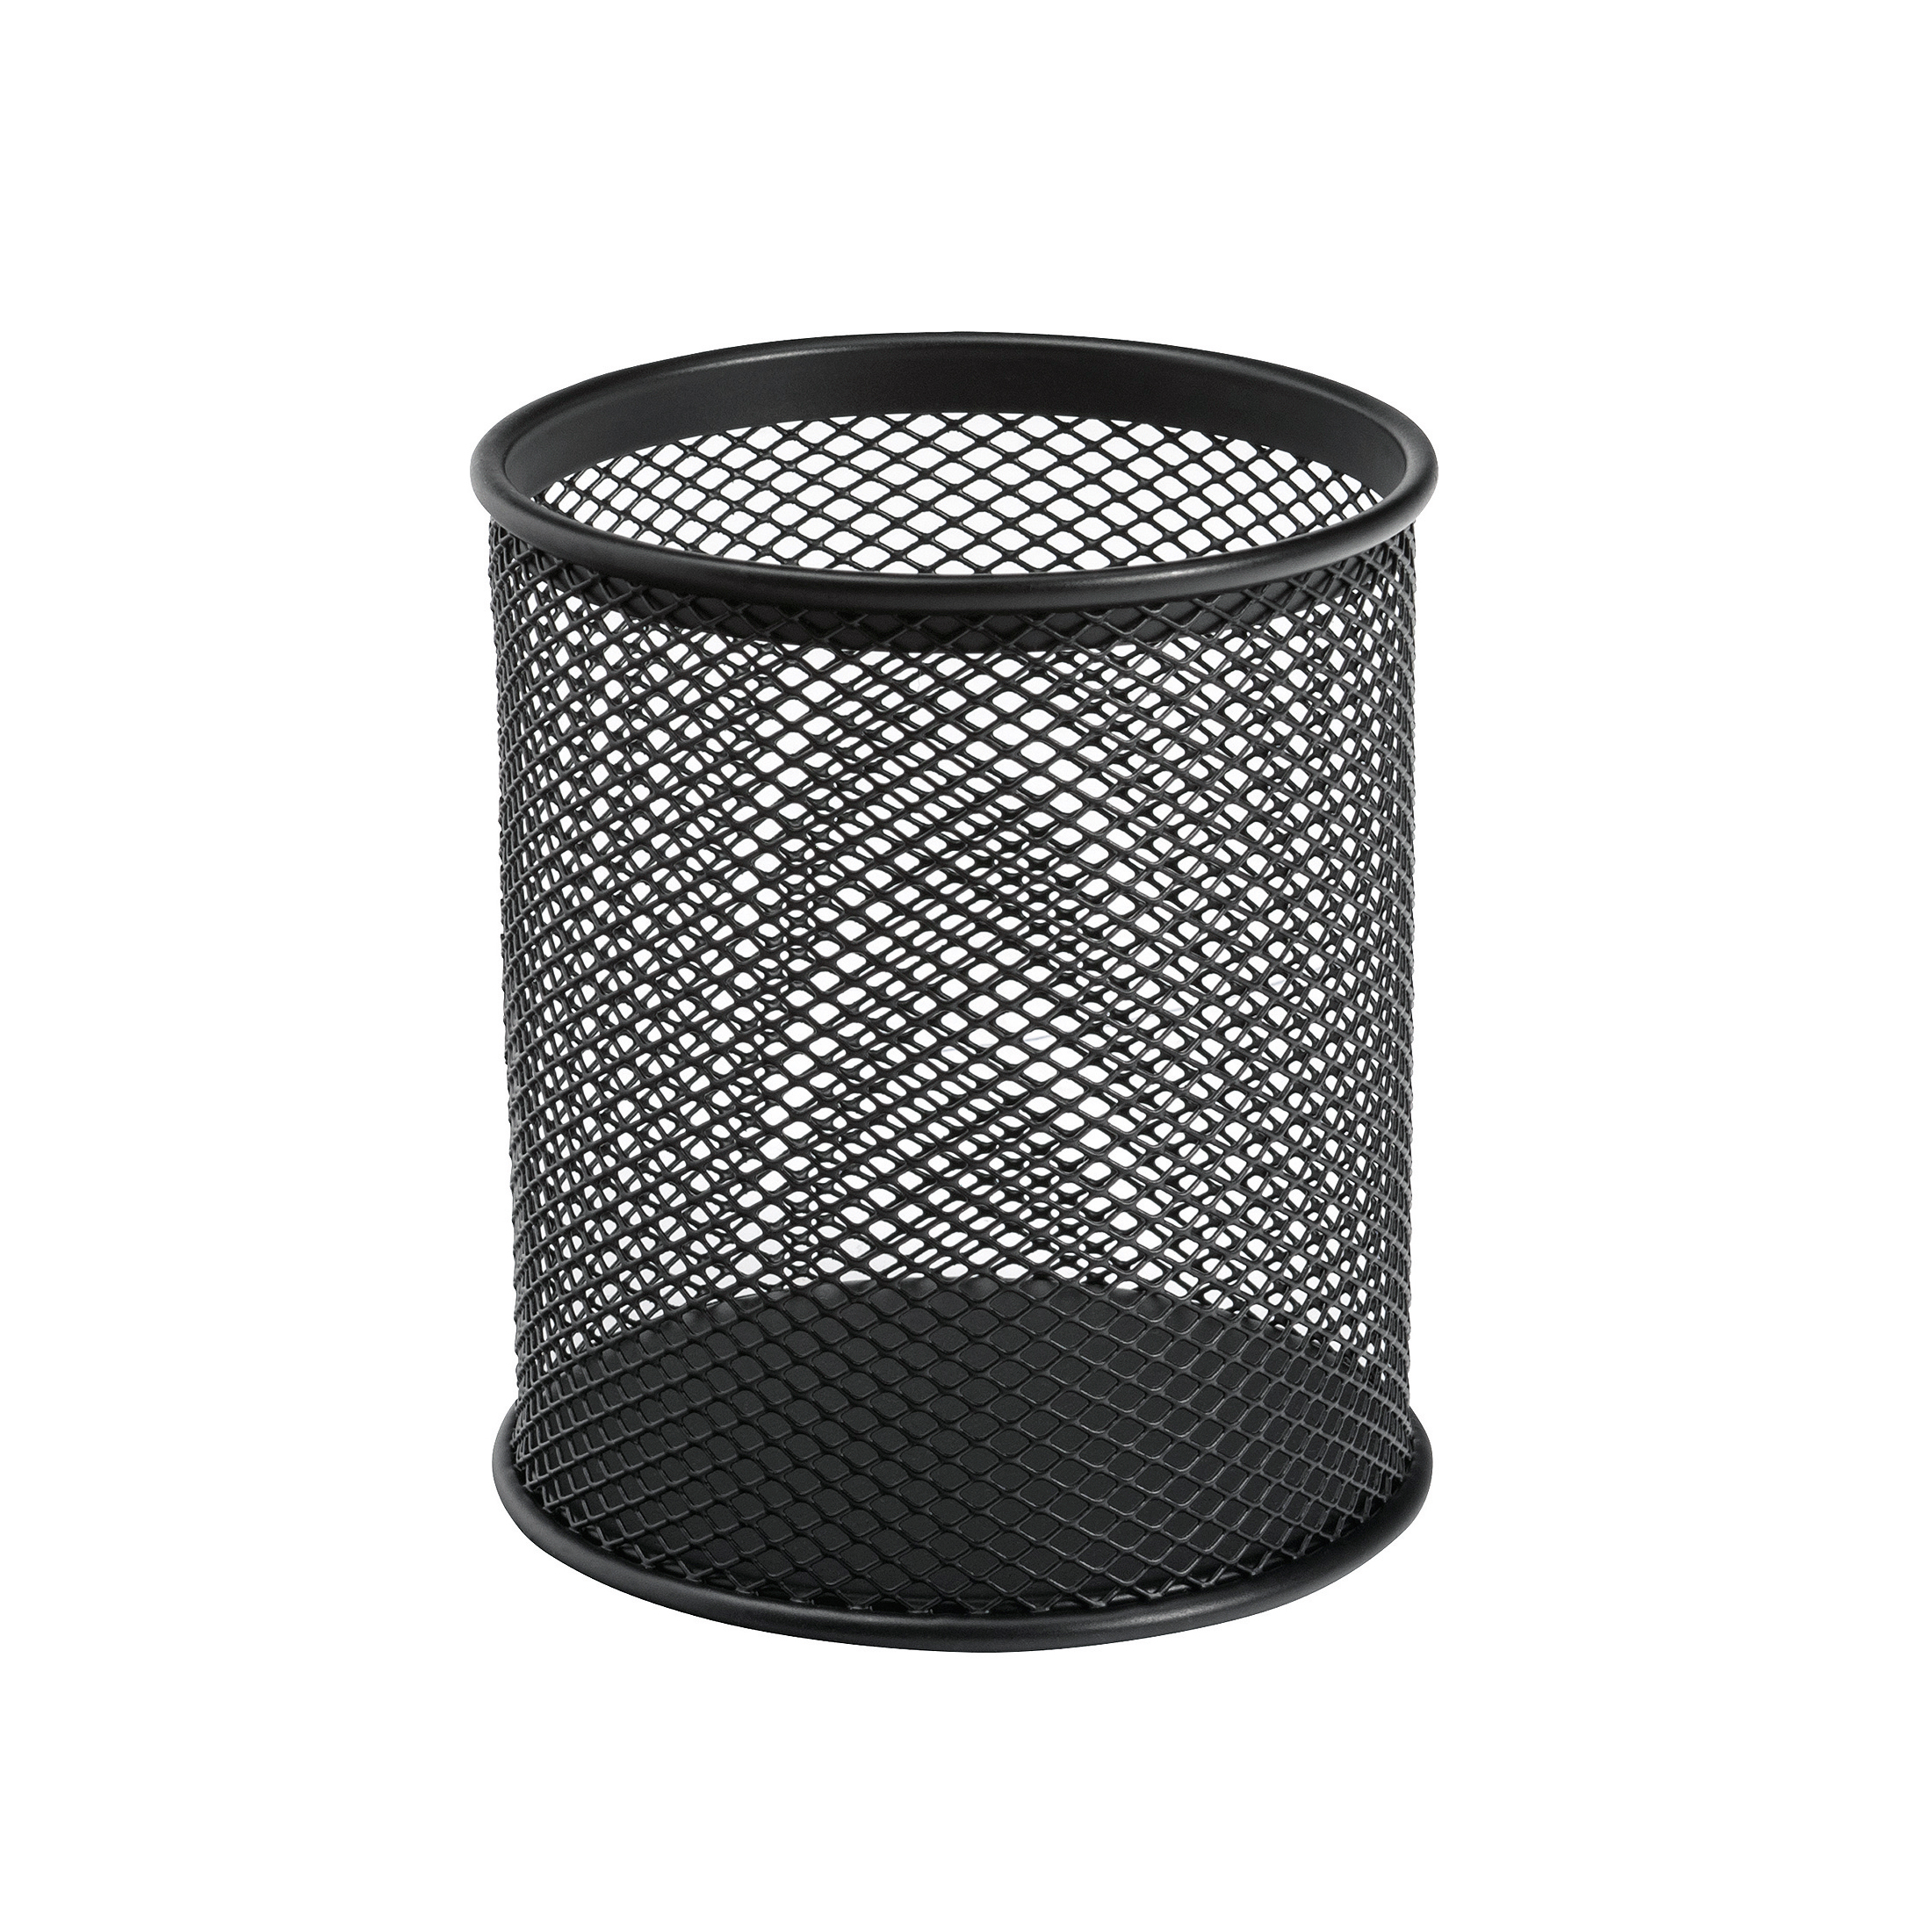 5 Star Office WireMesh Pencil Holder Blk